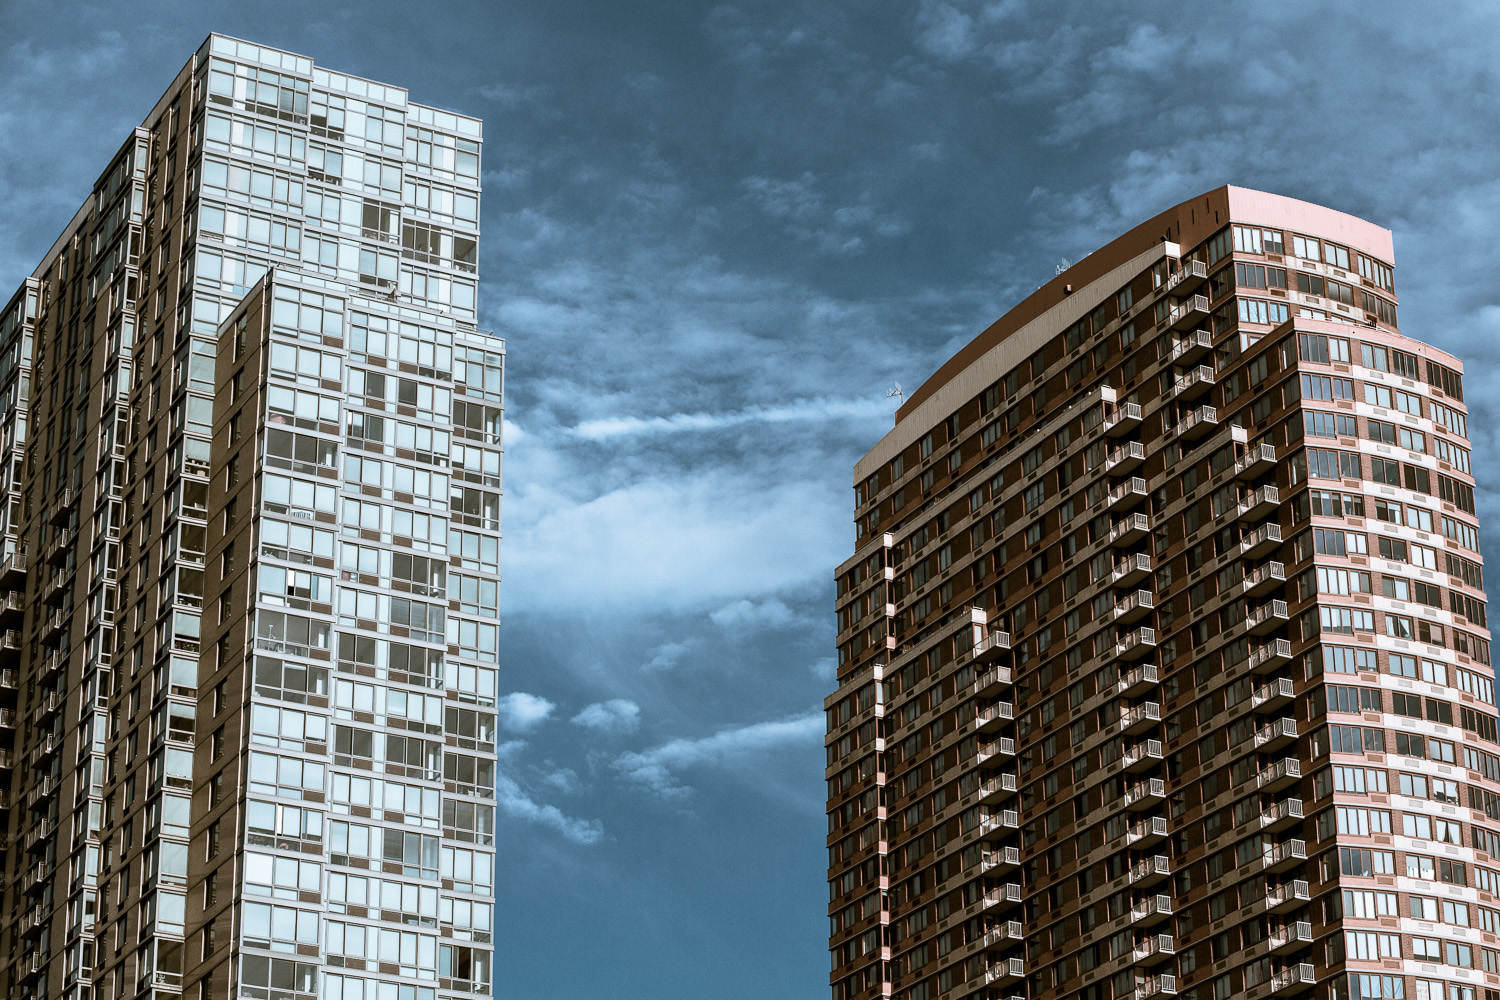 buildings-from-afar-3